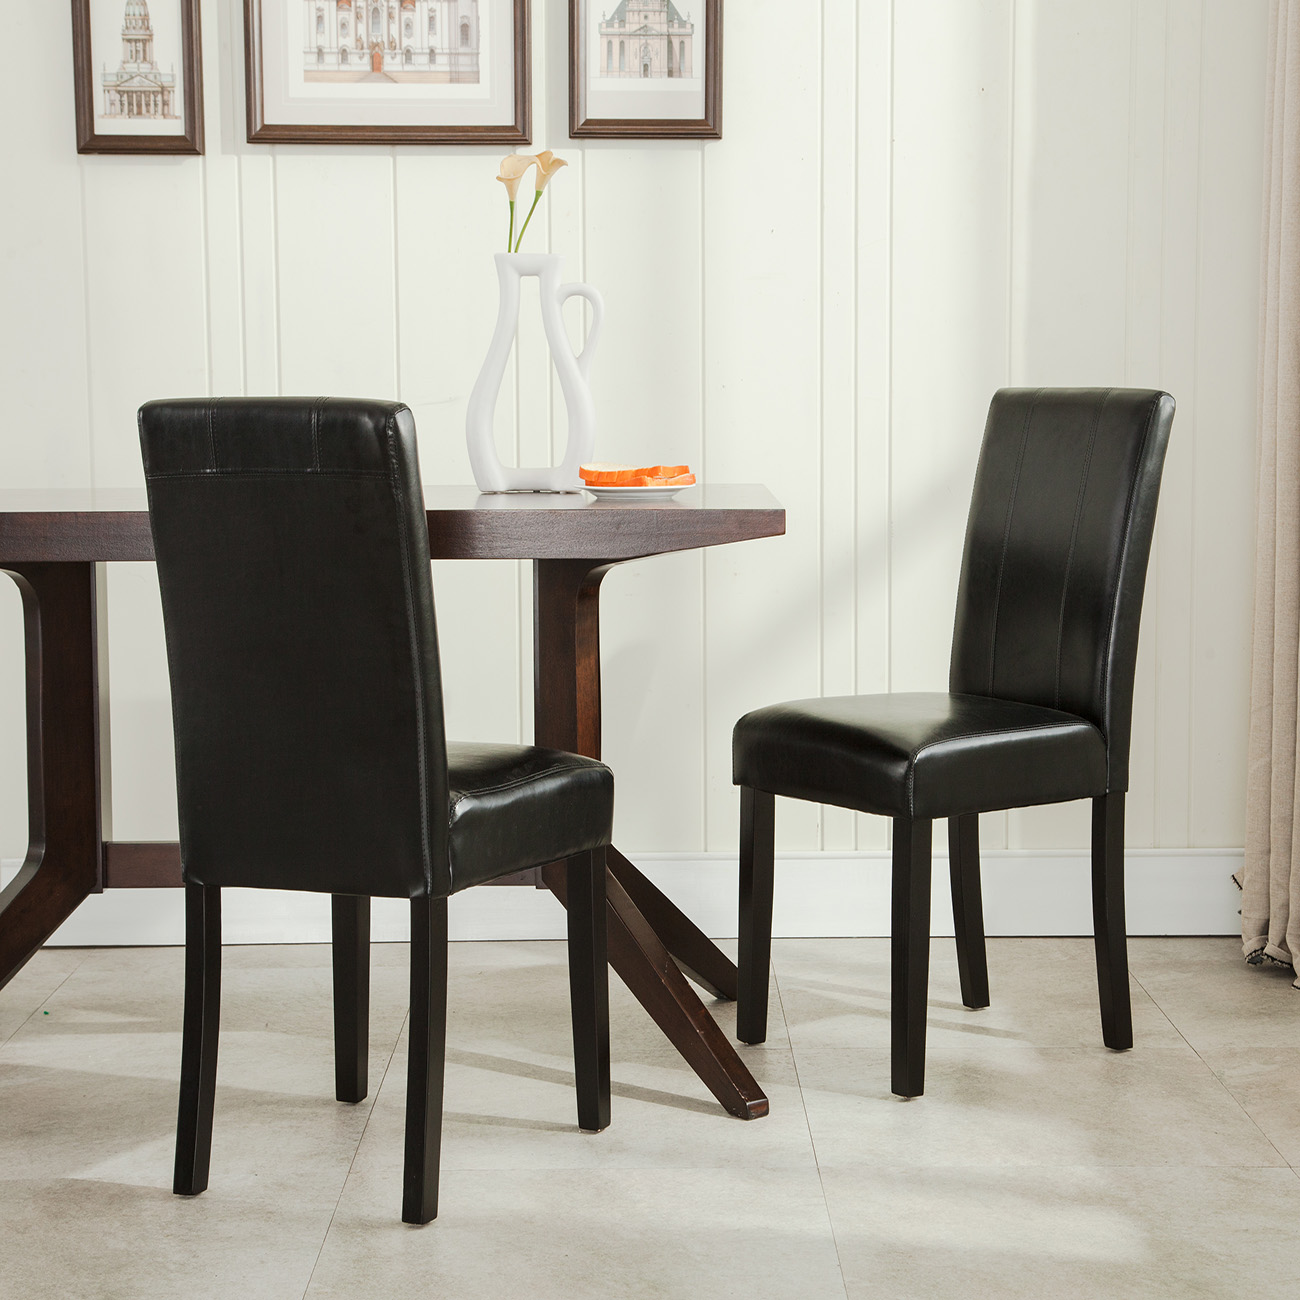 Belleze 2PC Leatherette Black Padded Parson Style Chair Dining Set Furniture, Black